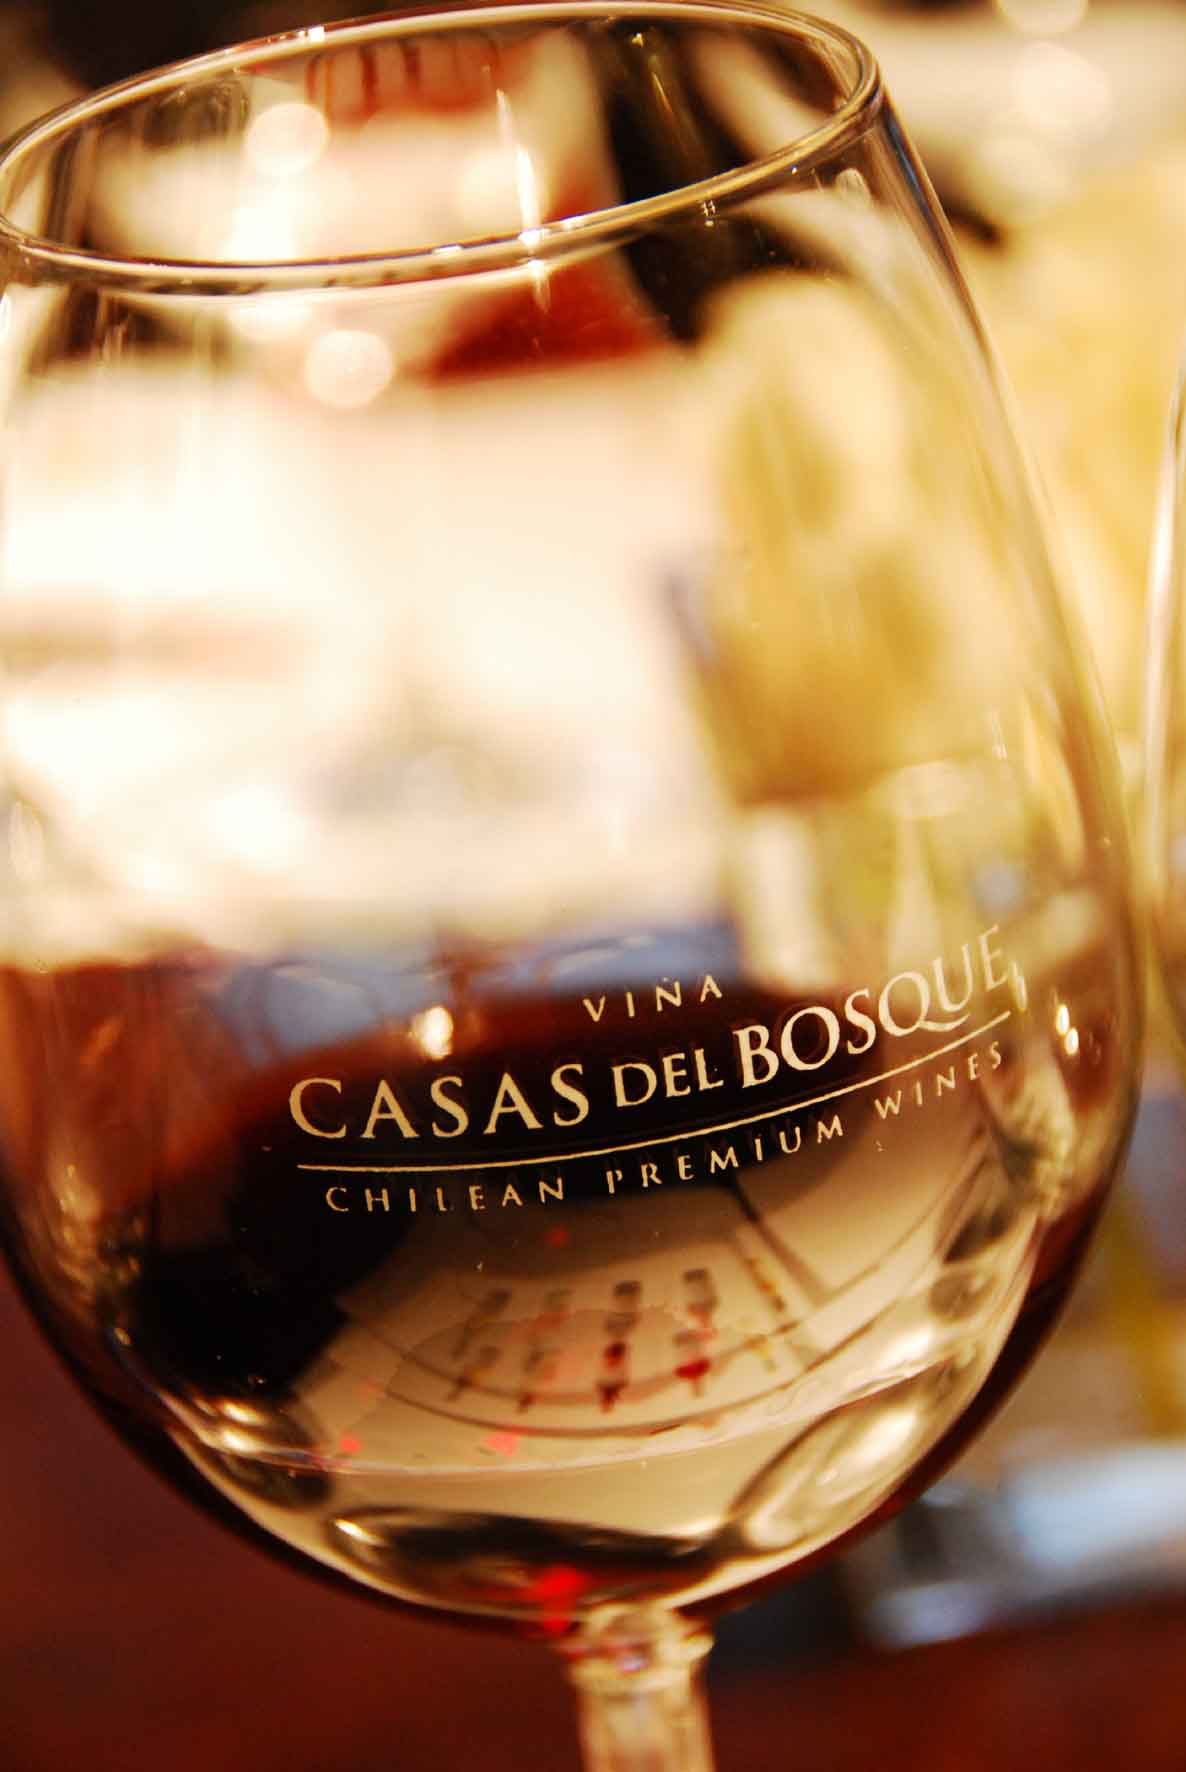 Casablanca - Casas del Bosque Vineyard